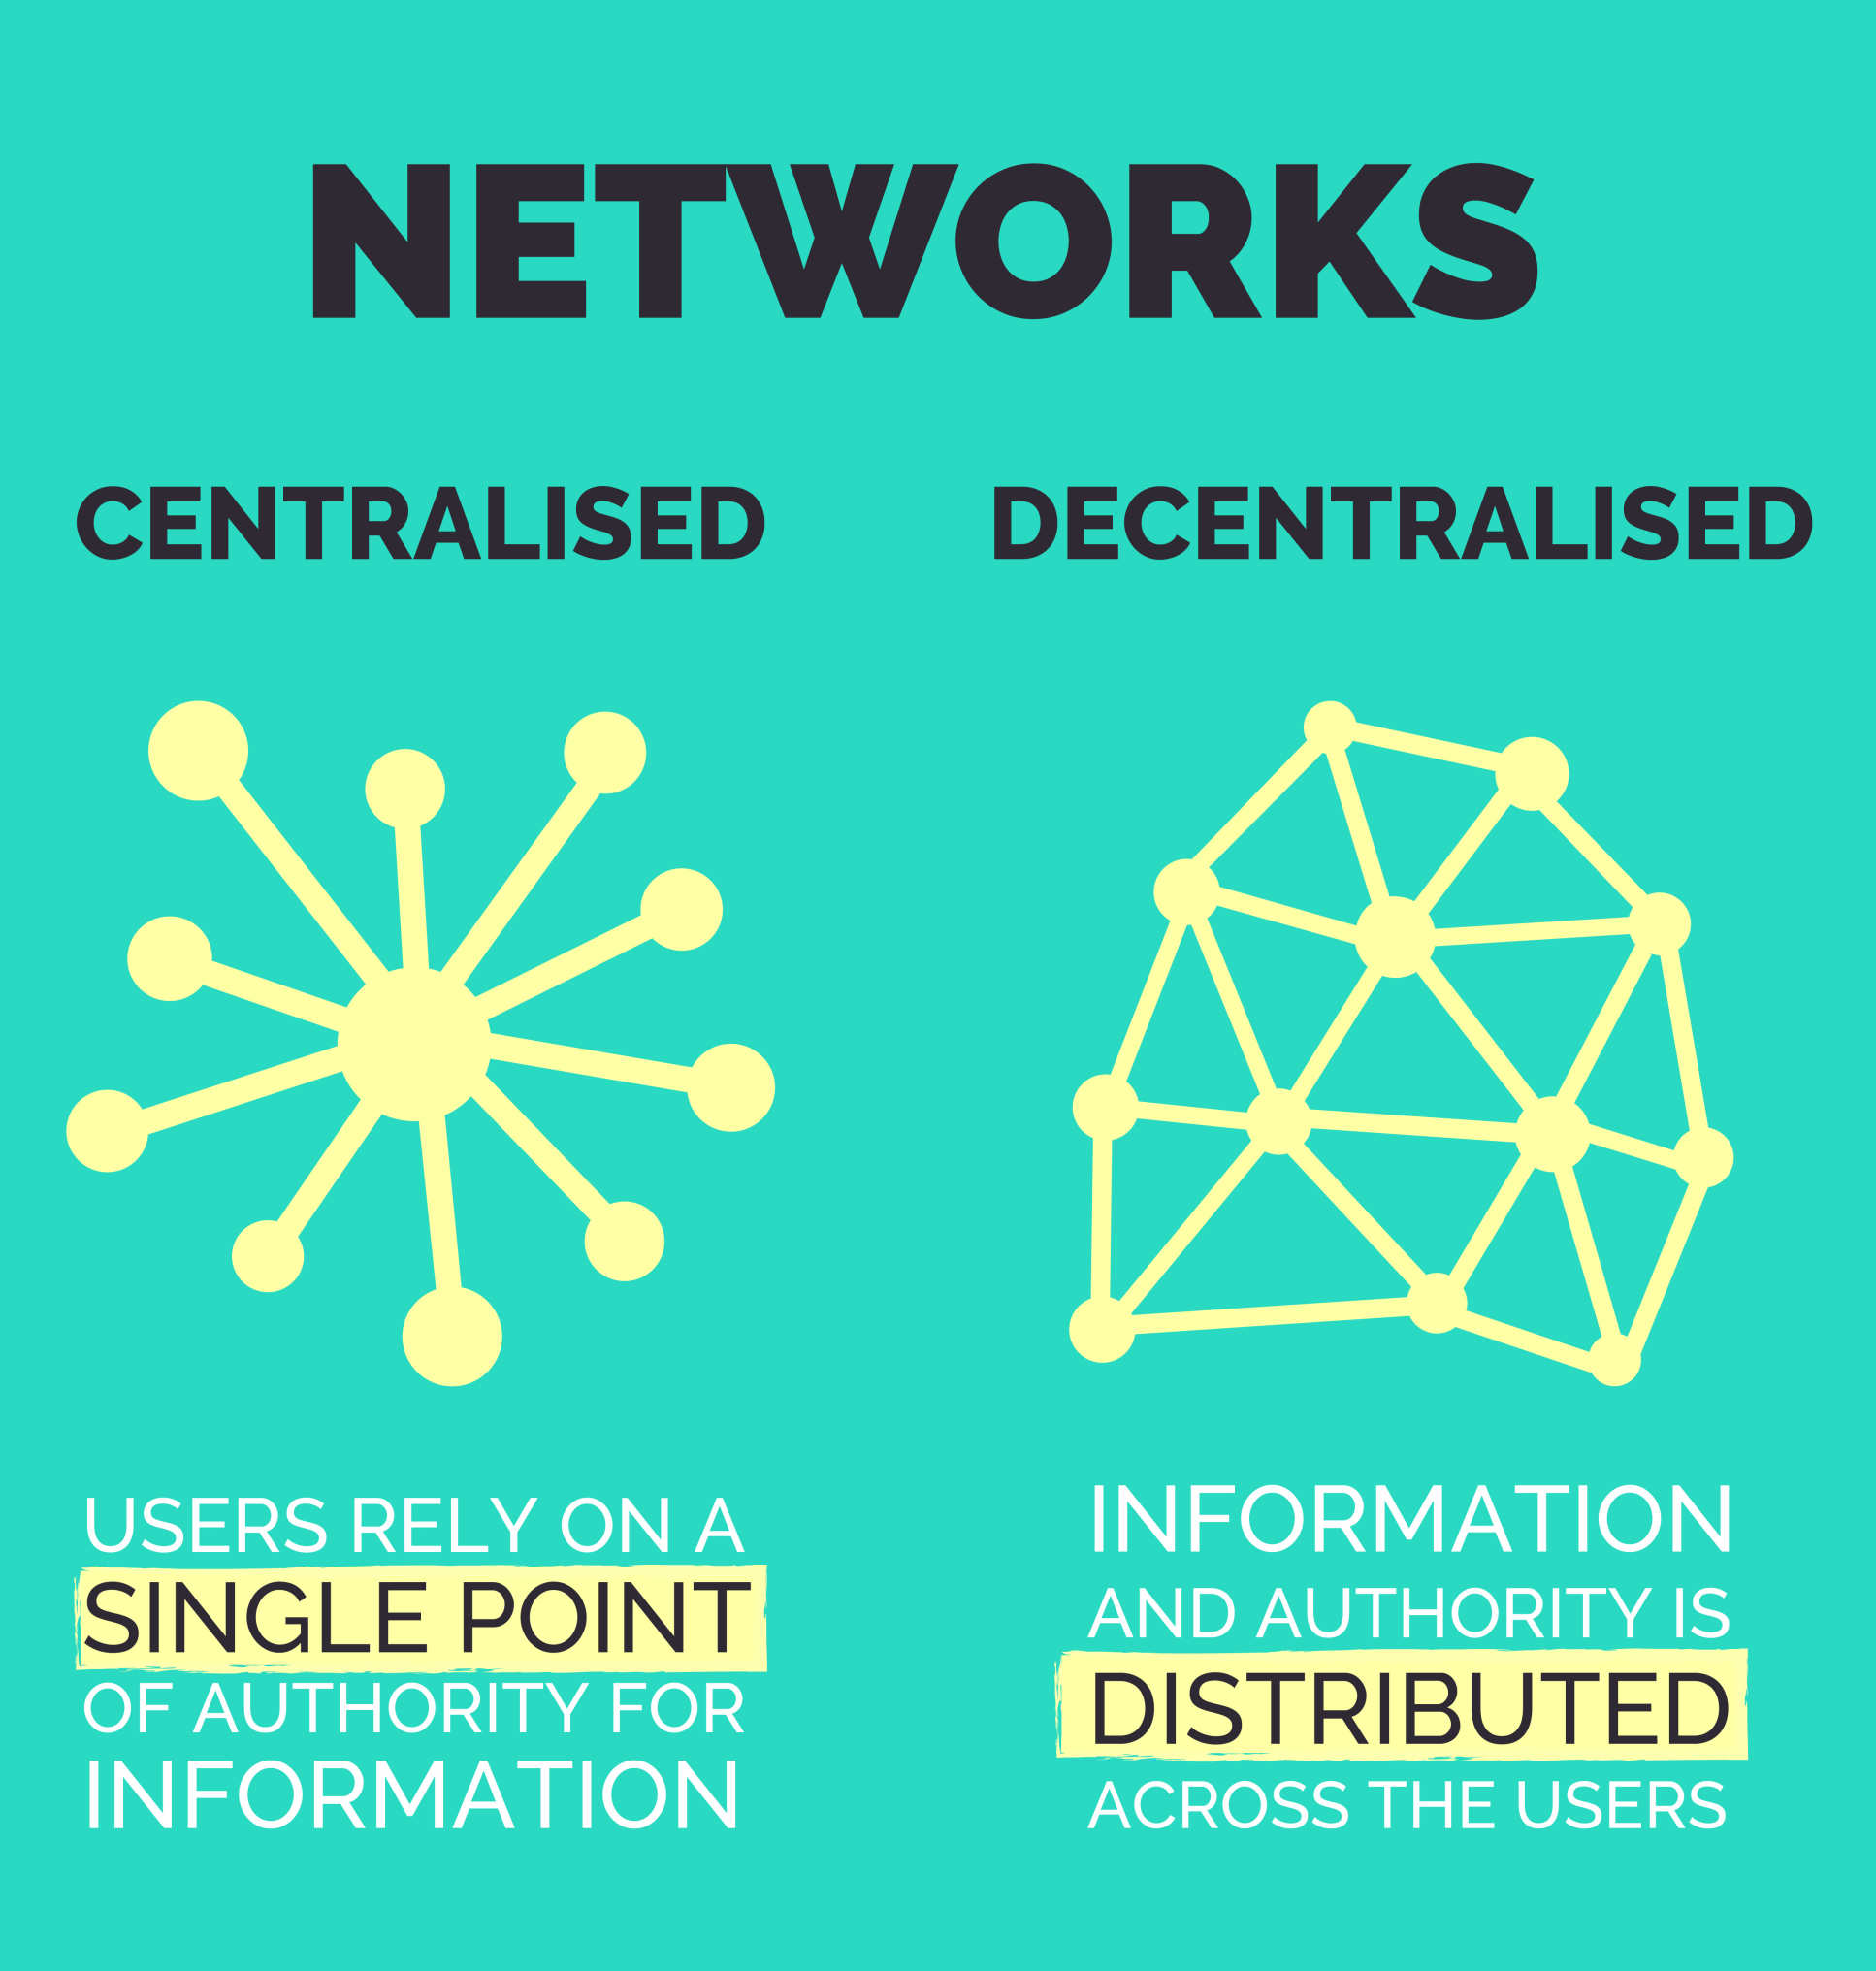 Illustration caption: Networks, centralised (users rely on a single point of authority for information); decentralised (information and authority is distributed across the users)